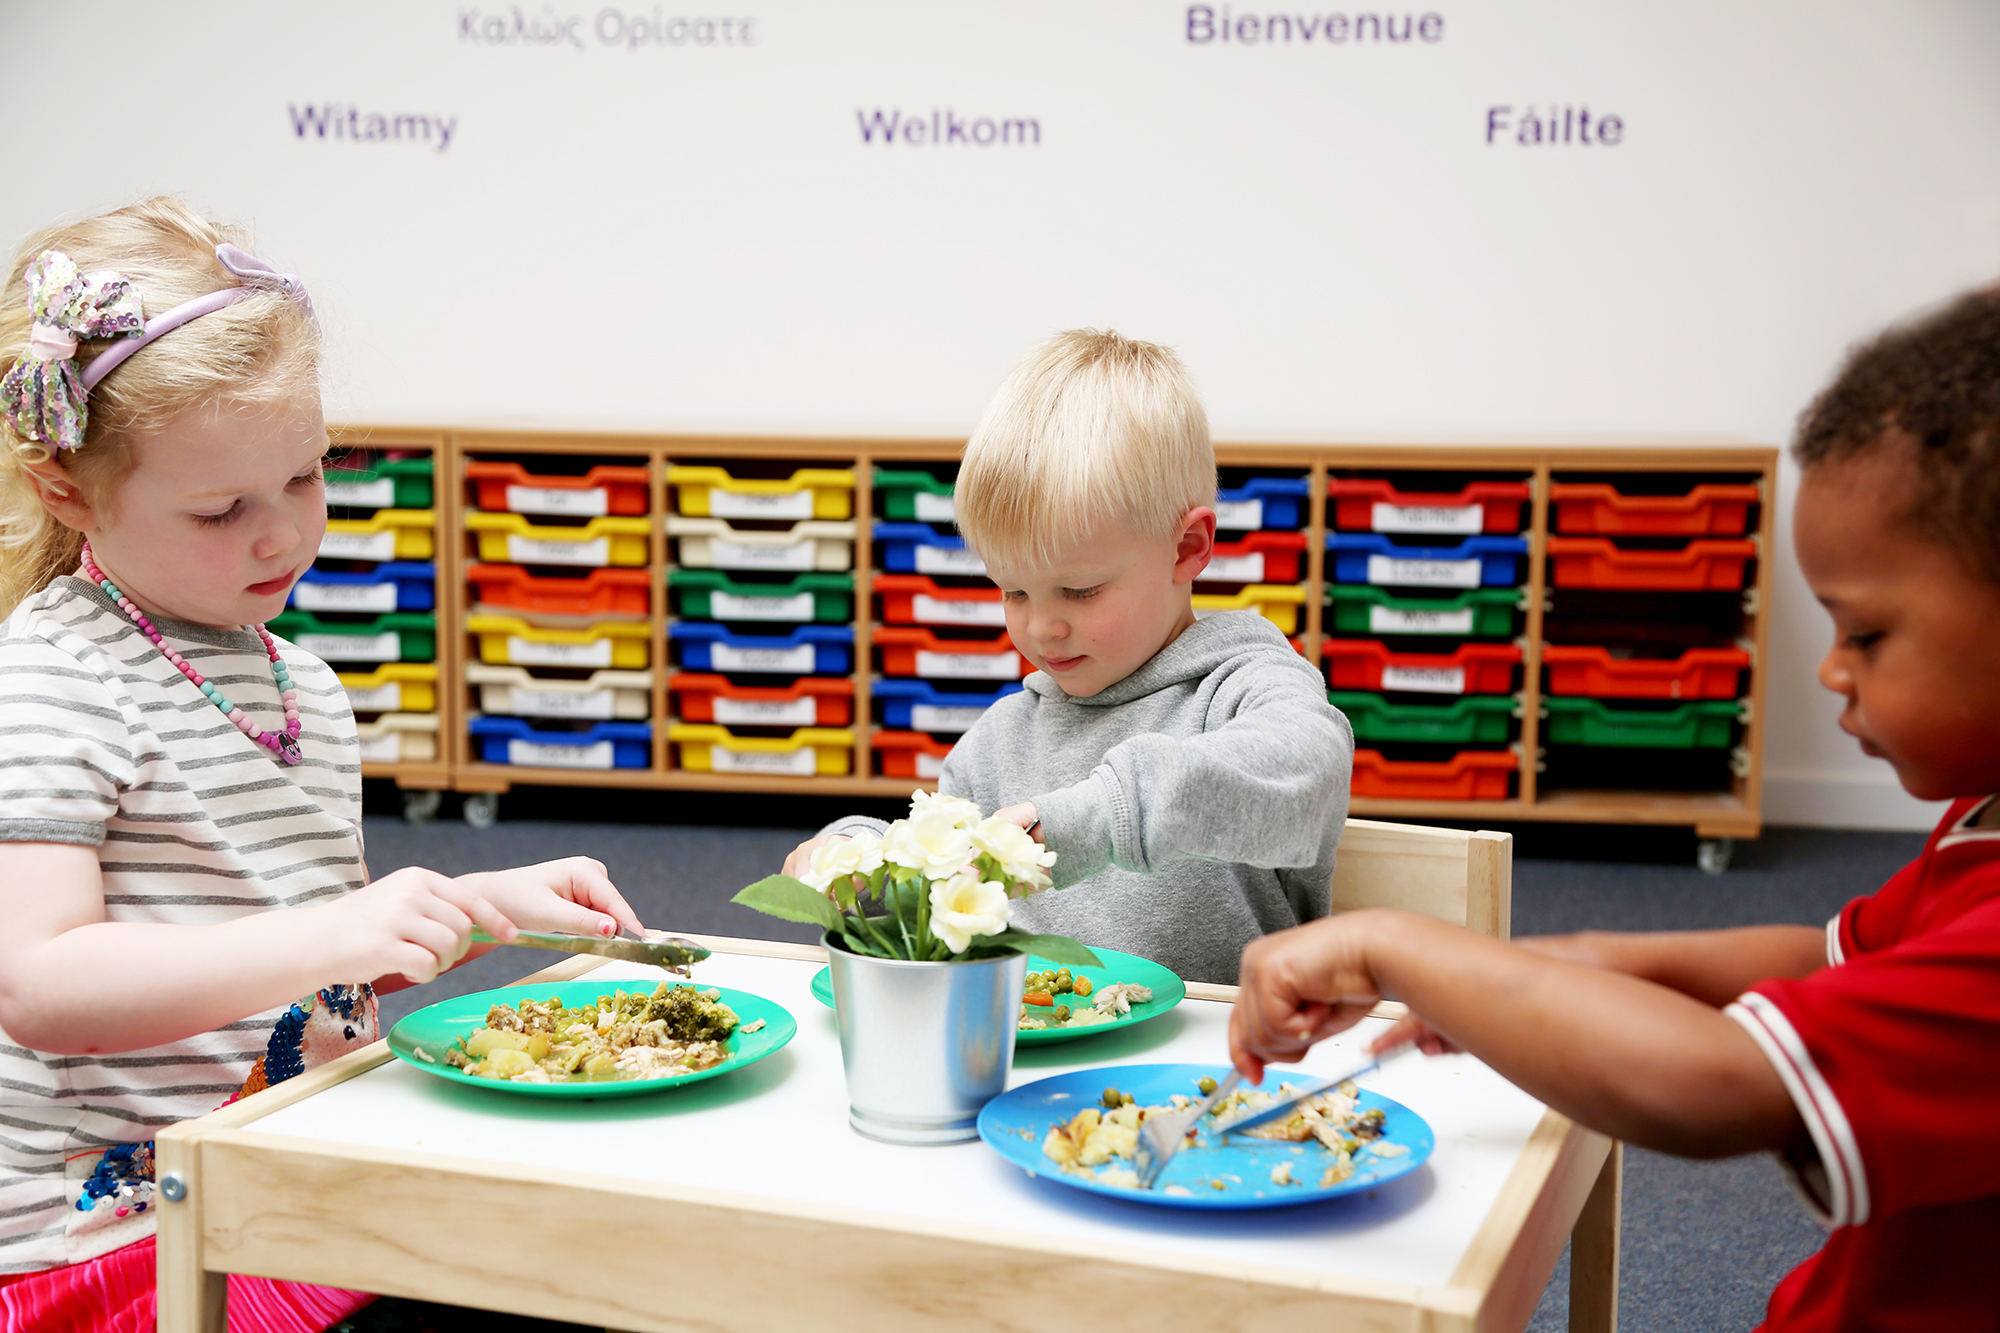 Photo: Children's Mealtime - Elmscot Group